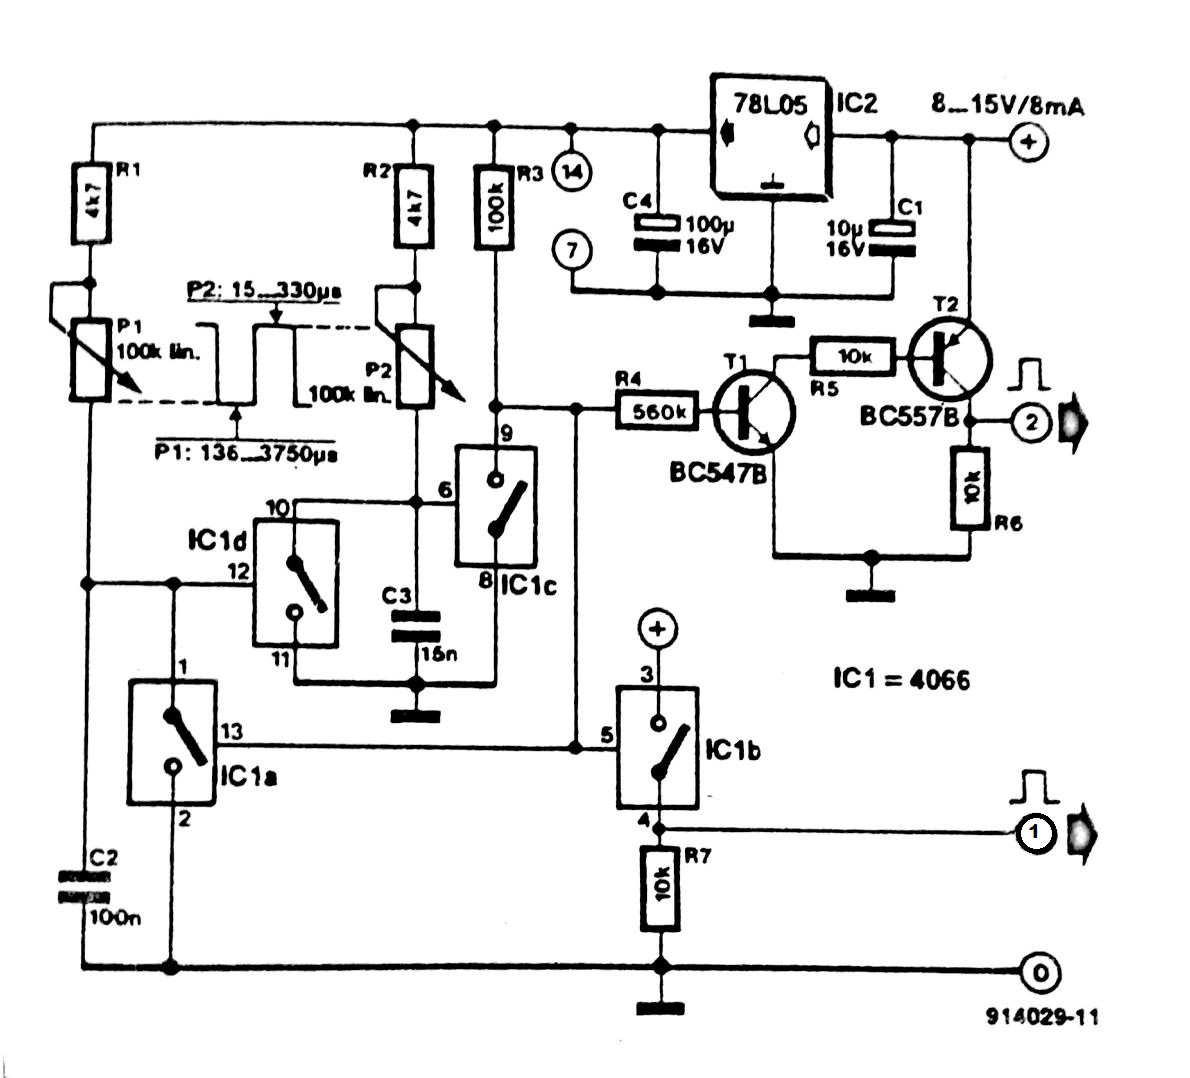 Pulse generator with one 4066 circuit diagram circuit diagram pulse generator meanwhile switch ic 1c is closed so that c2 is discharged switch ic 1a is opened and c3 is charged via p2 cheapraybanclubmaster Images